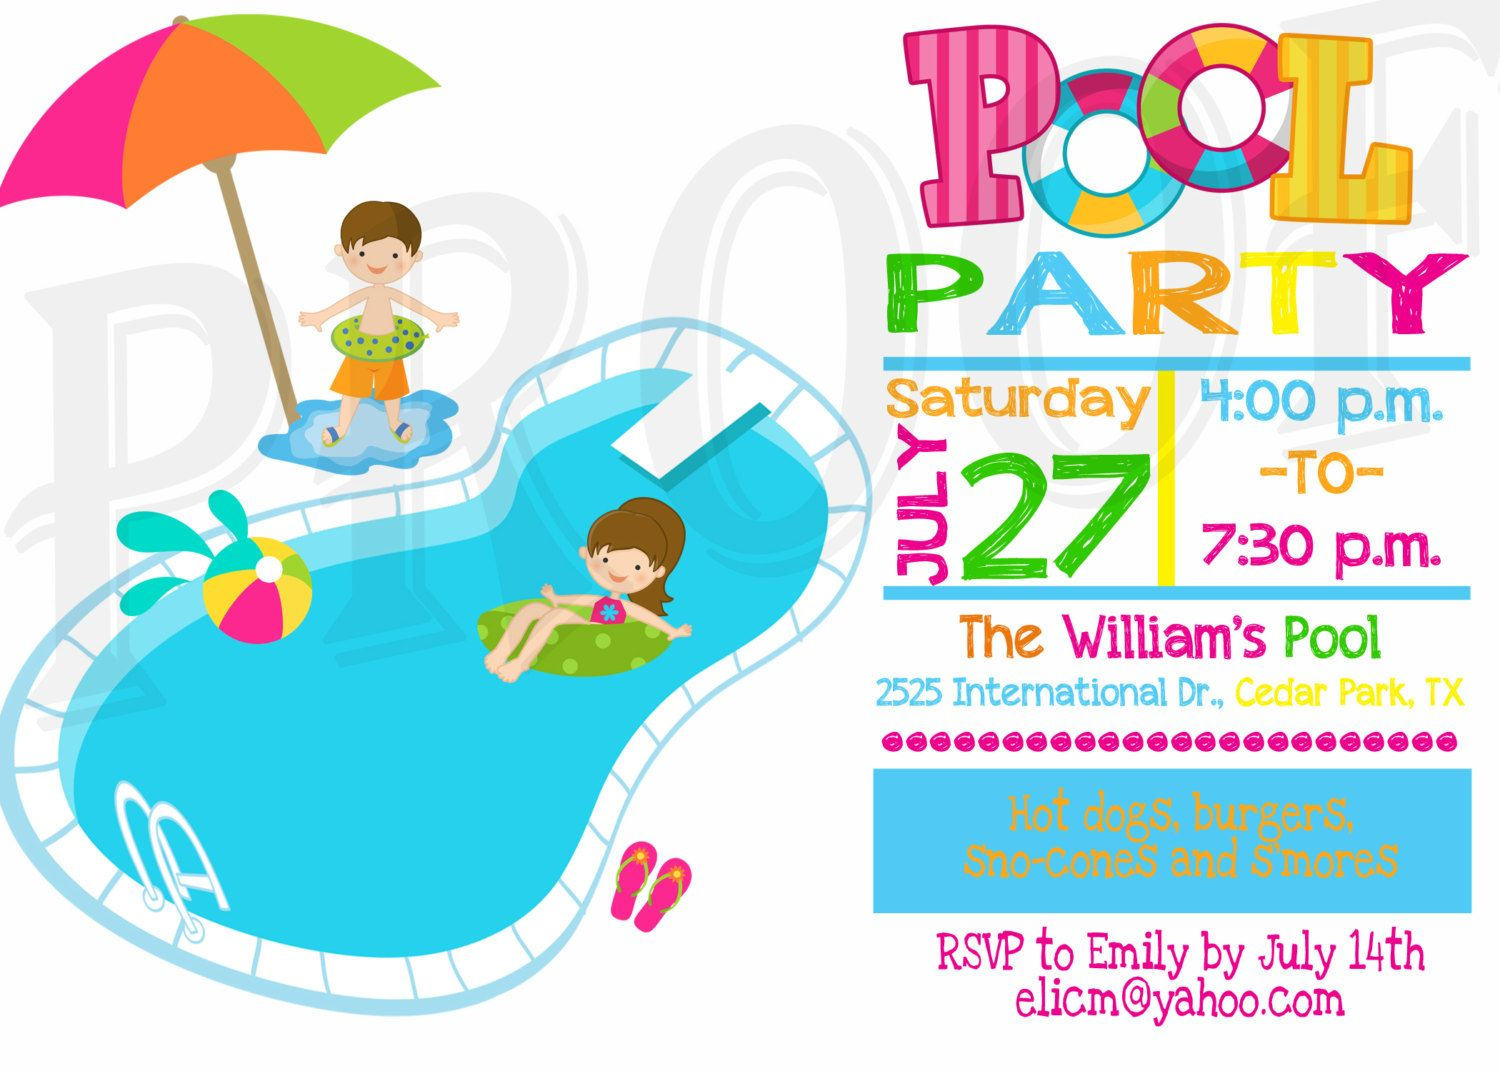 pool party invitation pool party decoration kids pool party pool party invitation pool party decoration kids pool party printable pool party invitation pool party invite